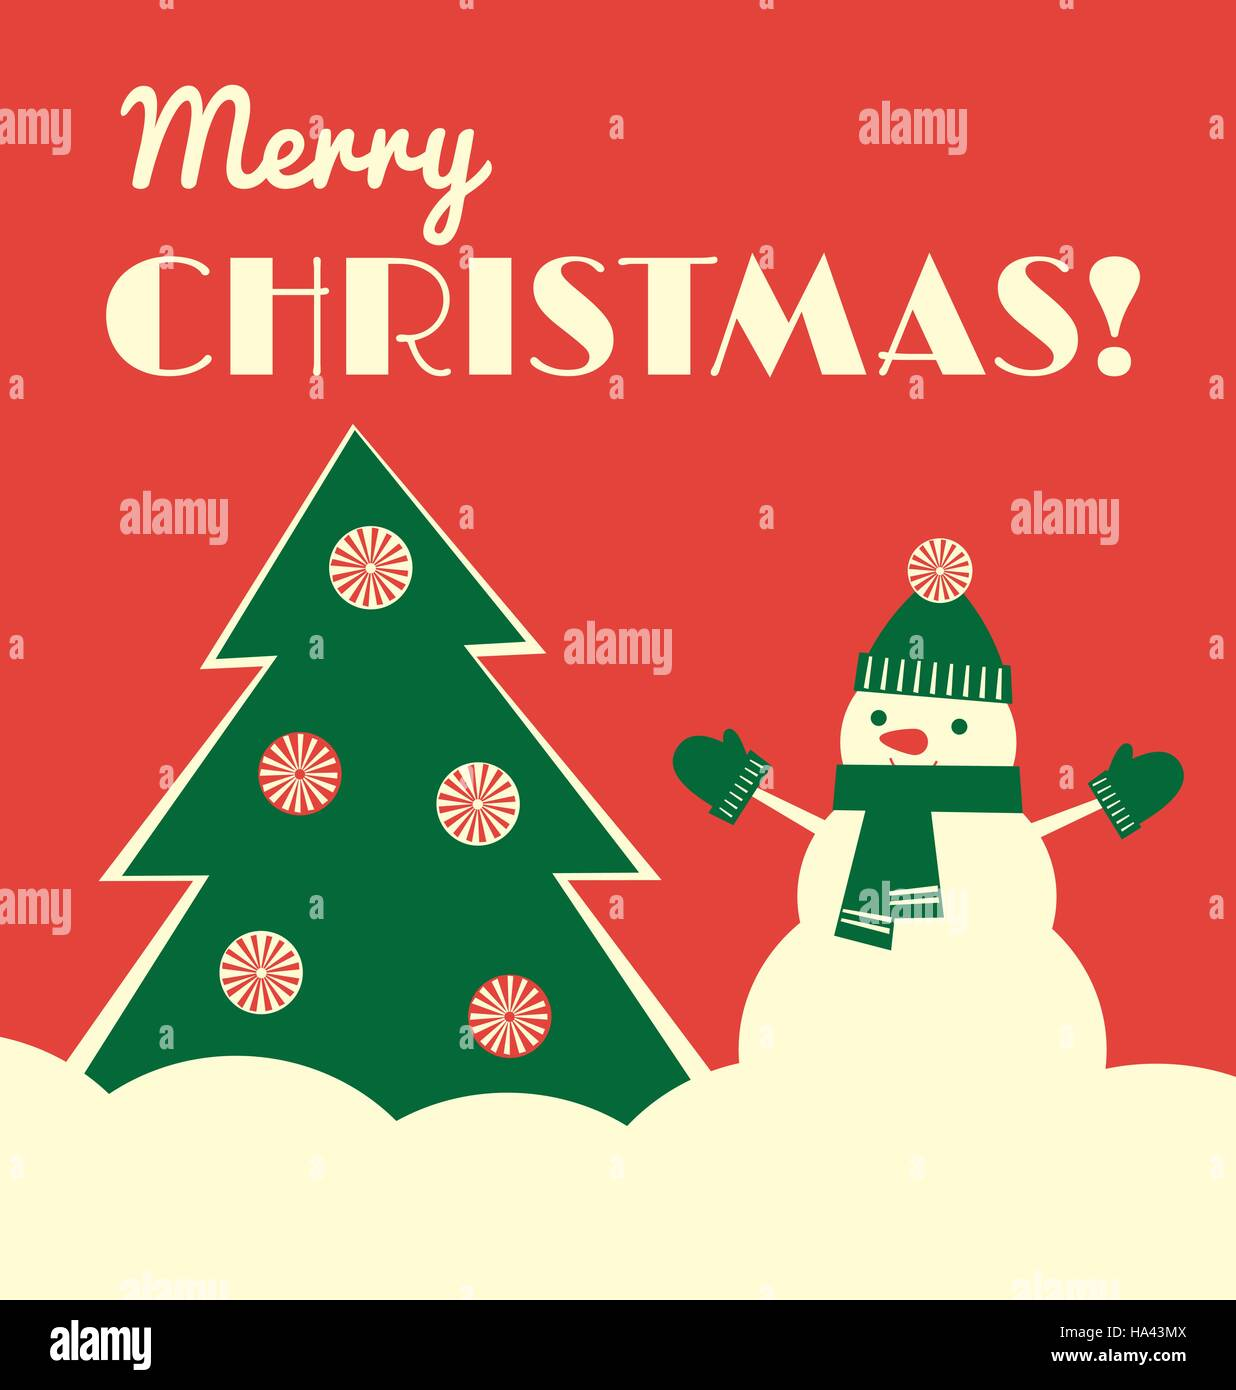 Vector illustration. Retro styled greeting card with a snowman in a hat, mittens and scarf standing near a Christmas - Stock Vector